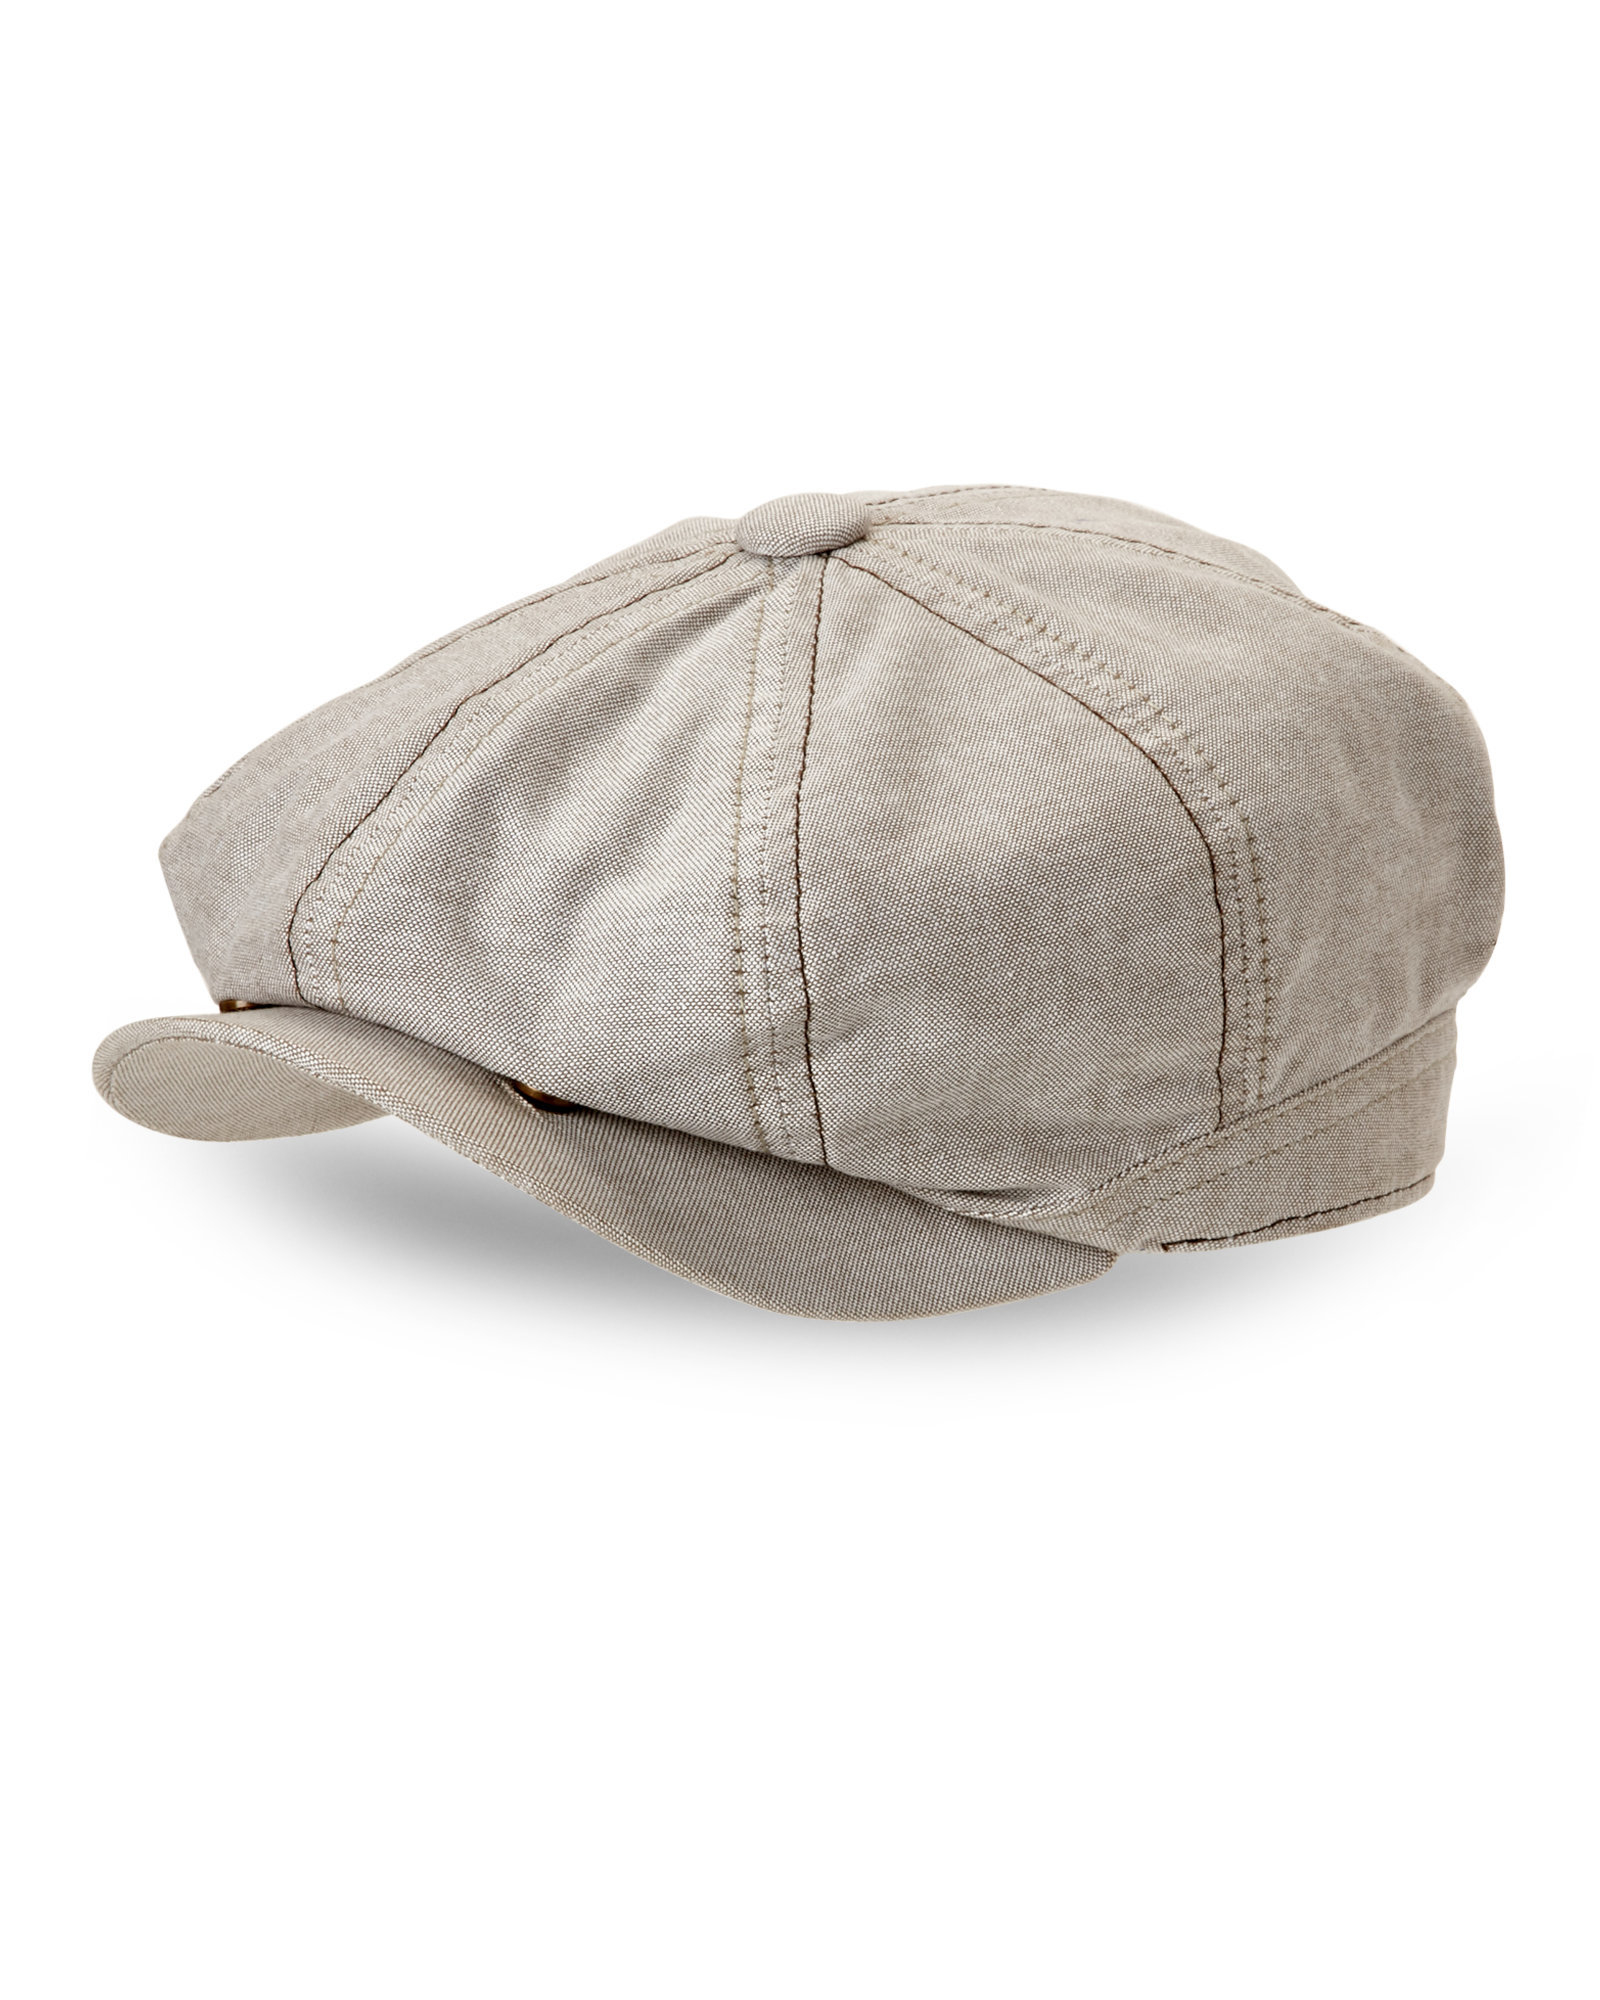 9795a8ed0eb Lyst - Stetson Khaki Newsboy Cap in Natural for Men